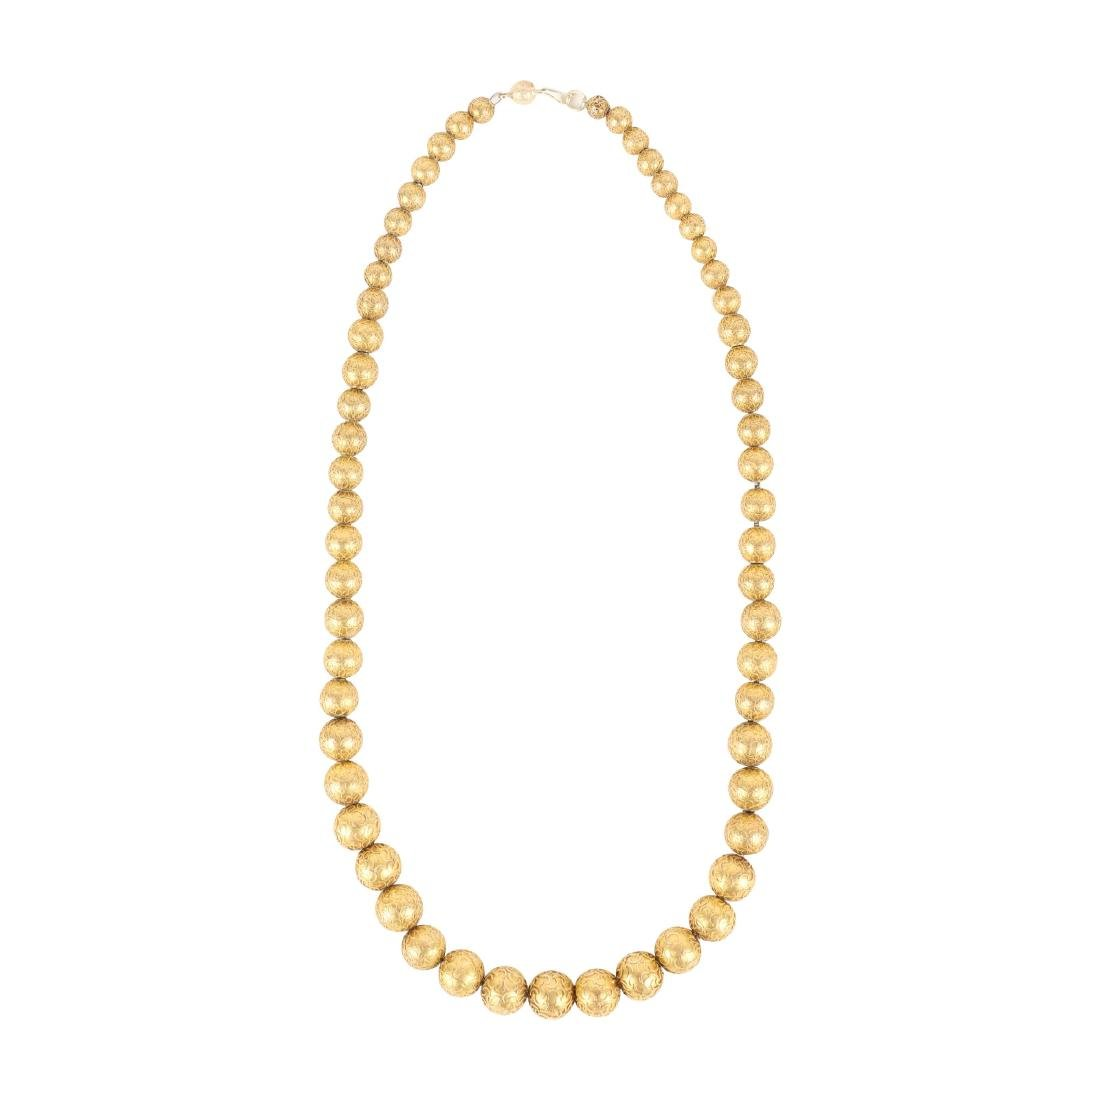 An 18K Yellow Gold Necklace